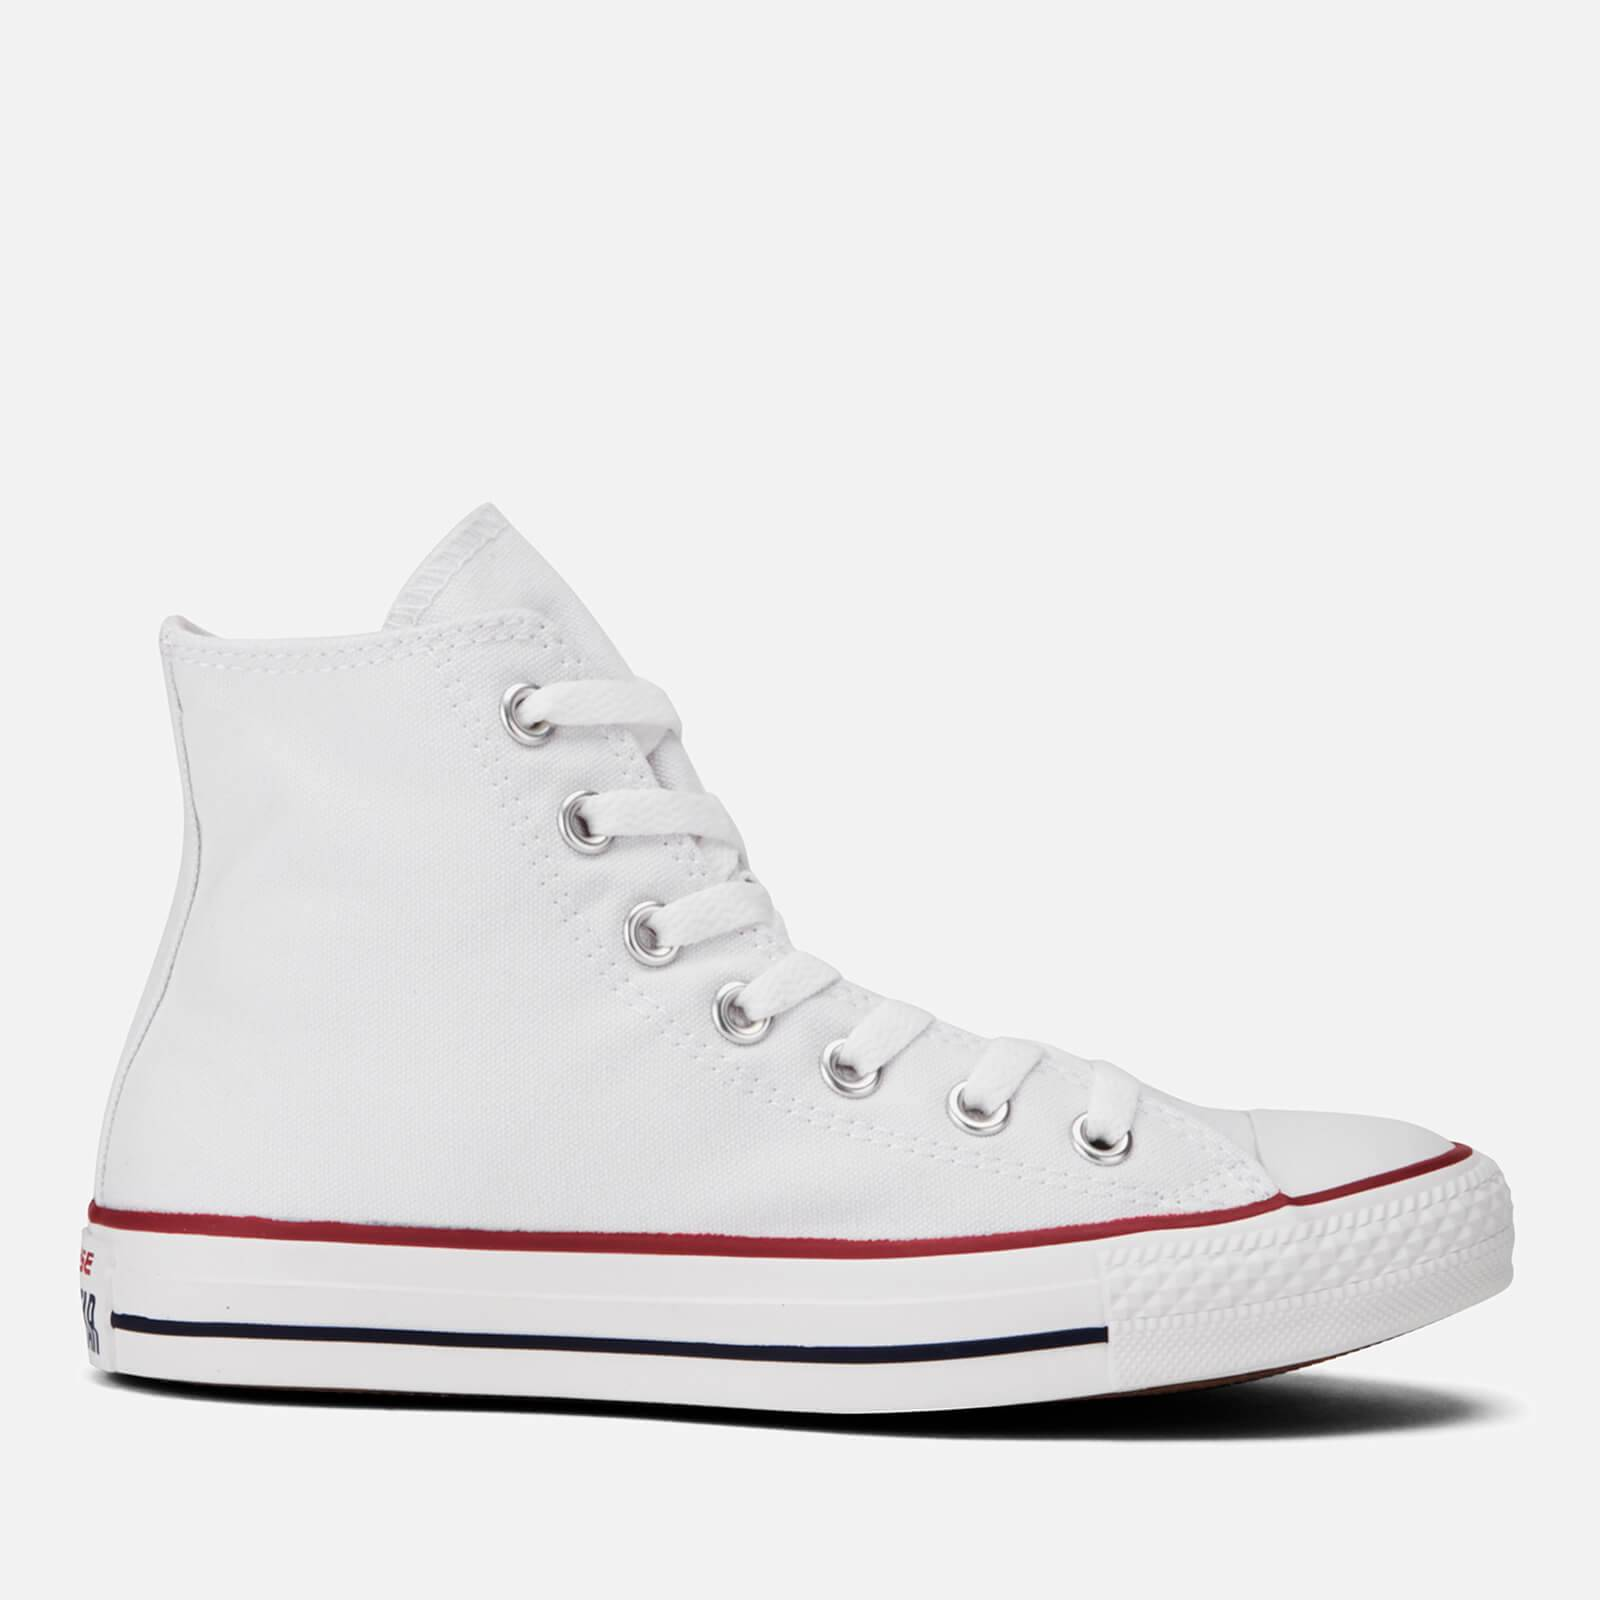 Converse Chuck Taylor All Star Canvas Hi-Top Trainers - Optical White - UK 7